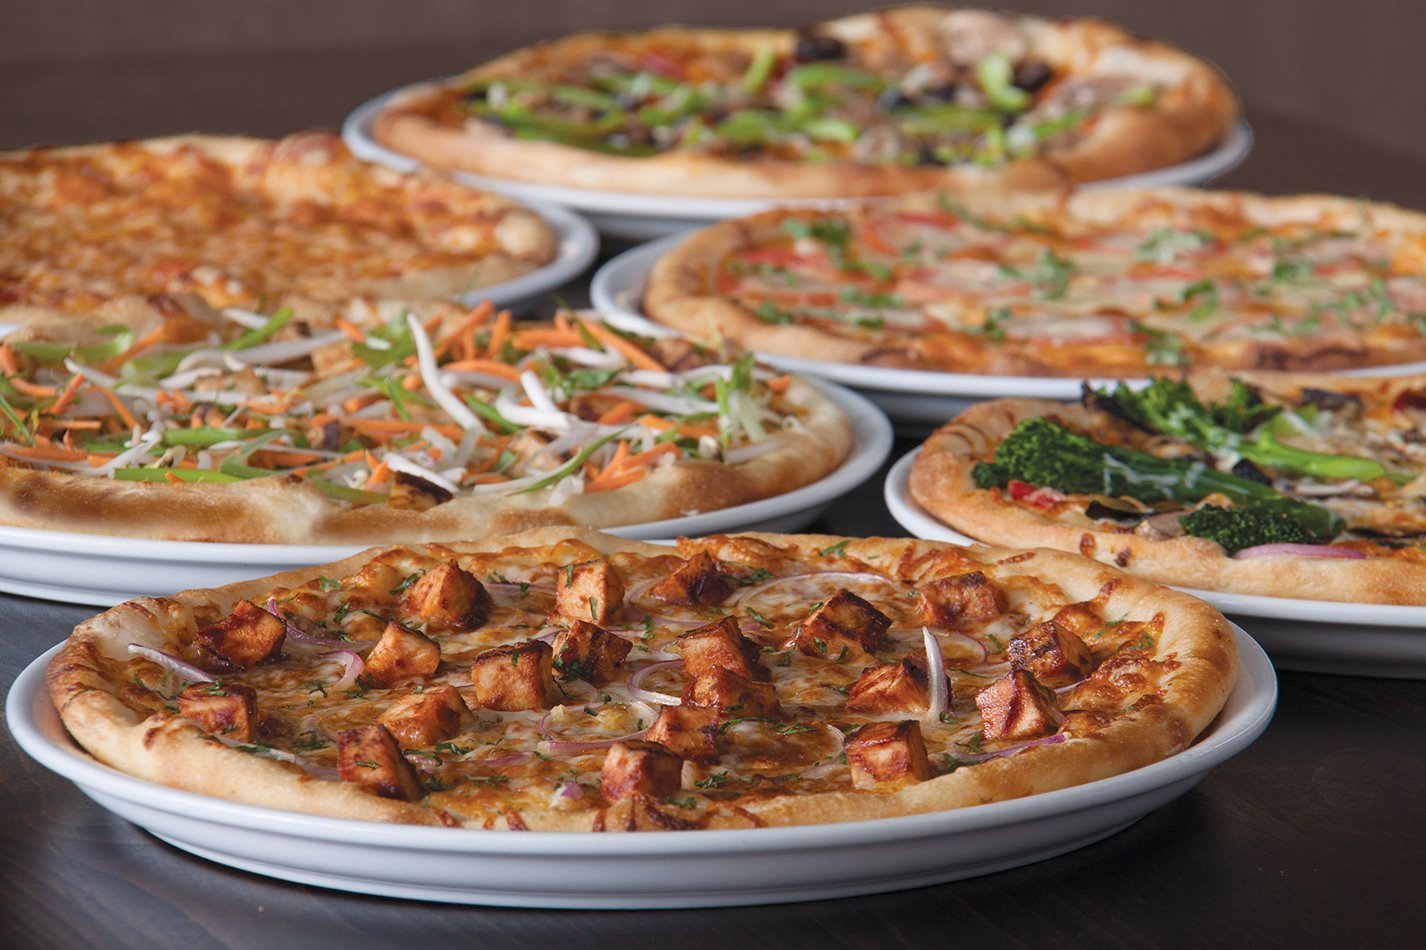 California Pizza Kitchen 49 W Maryland St Ste 104, Indianapolis, IN ...